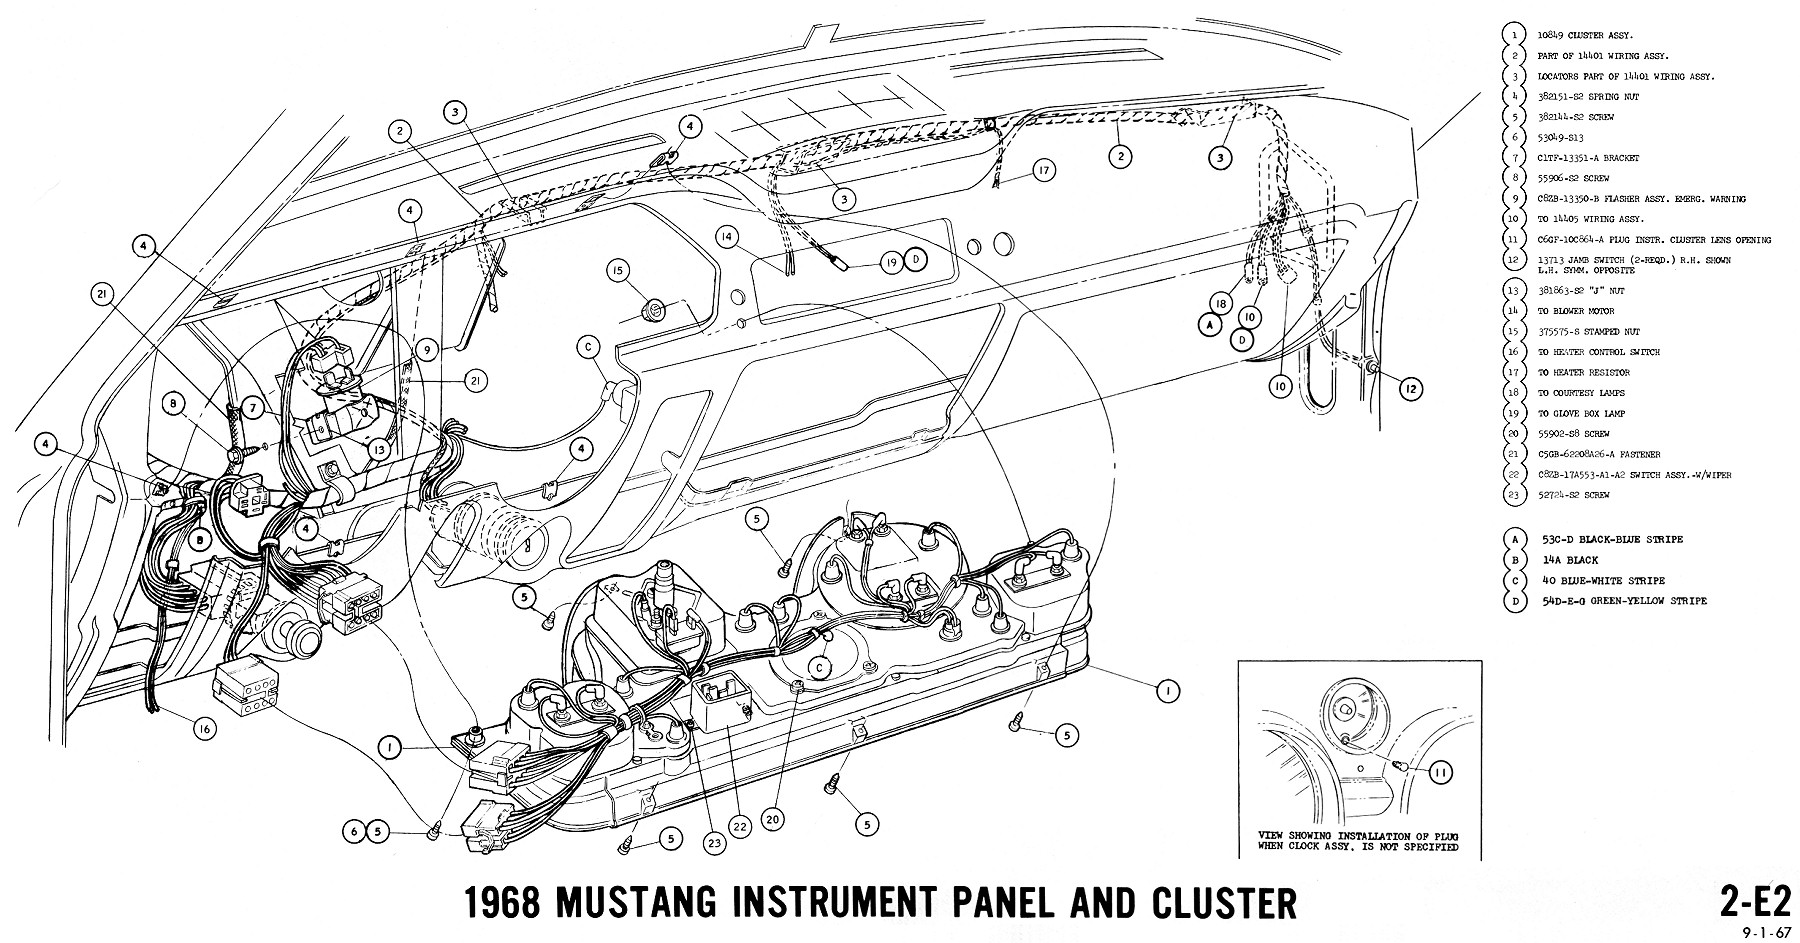 1968 mustang wiring diagram instruments 2 1968 mustang wiring diagrams and vacuum schematics average joe 66 mustang wiring diagram at virtualis.co